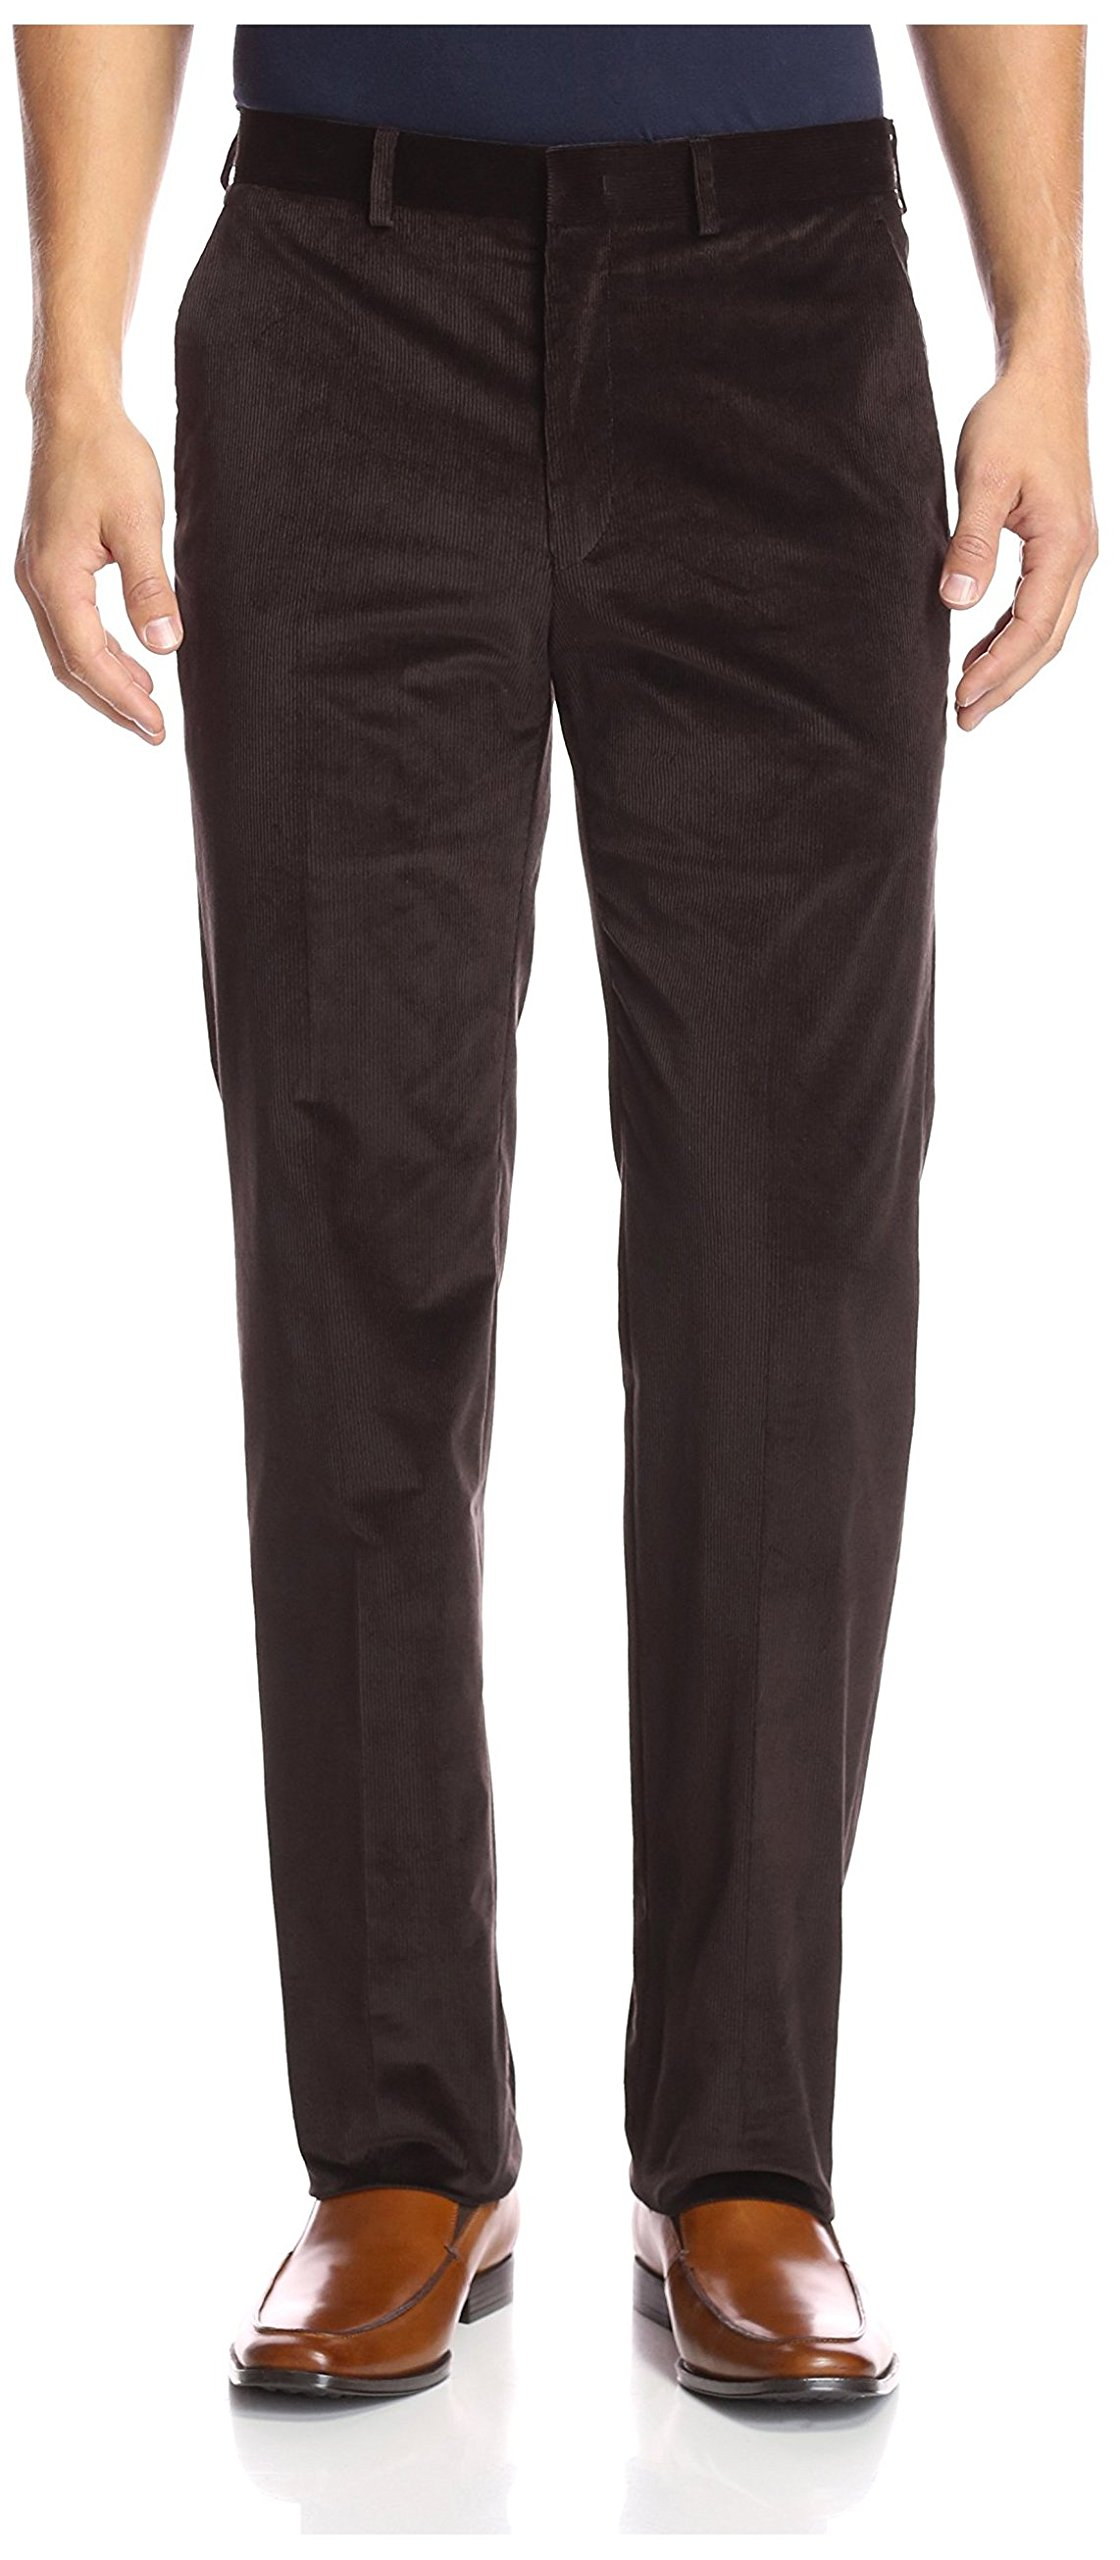 Franklin Tailored Men's Flat Front Corduroy Tyler Trouser, Brown, 34 US